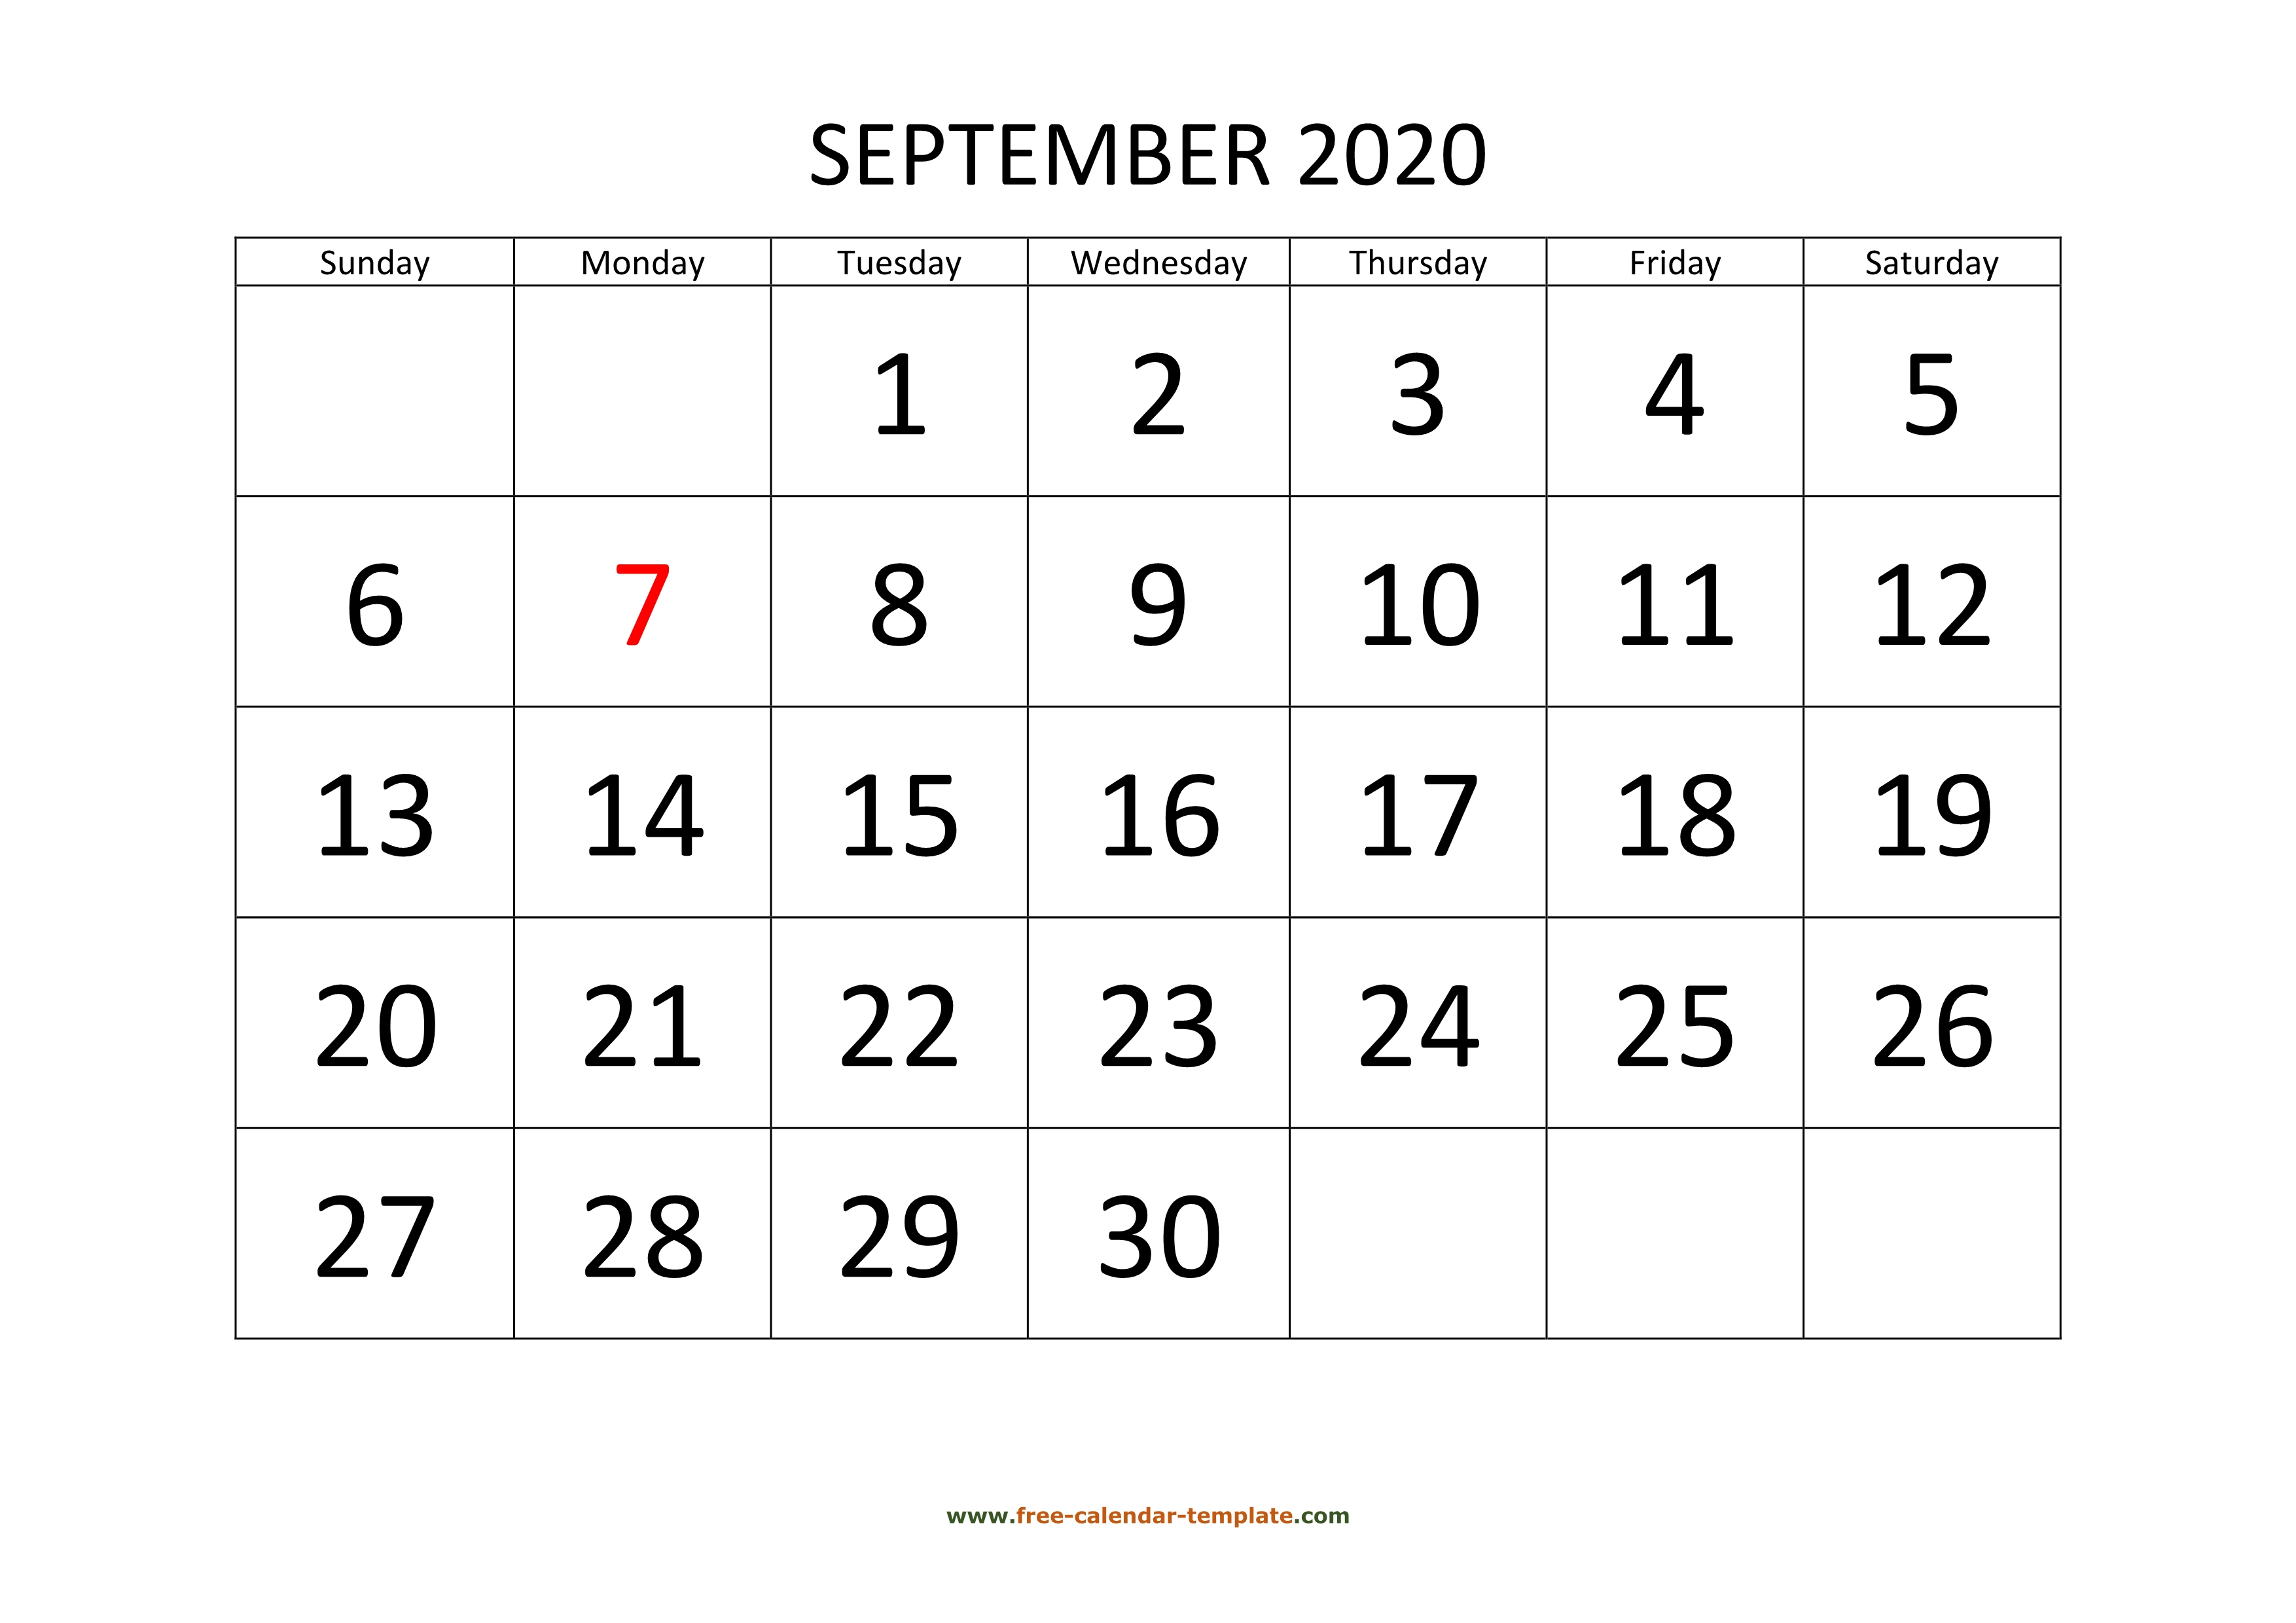 September 2020 Calendar Designed With Large Font (Horizontal with Large Numbers Free Printable Calendar 2020